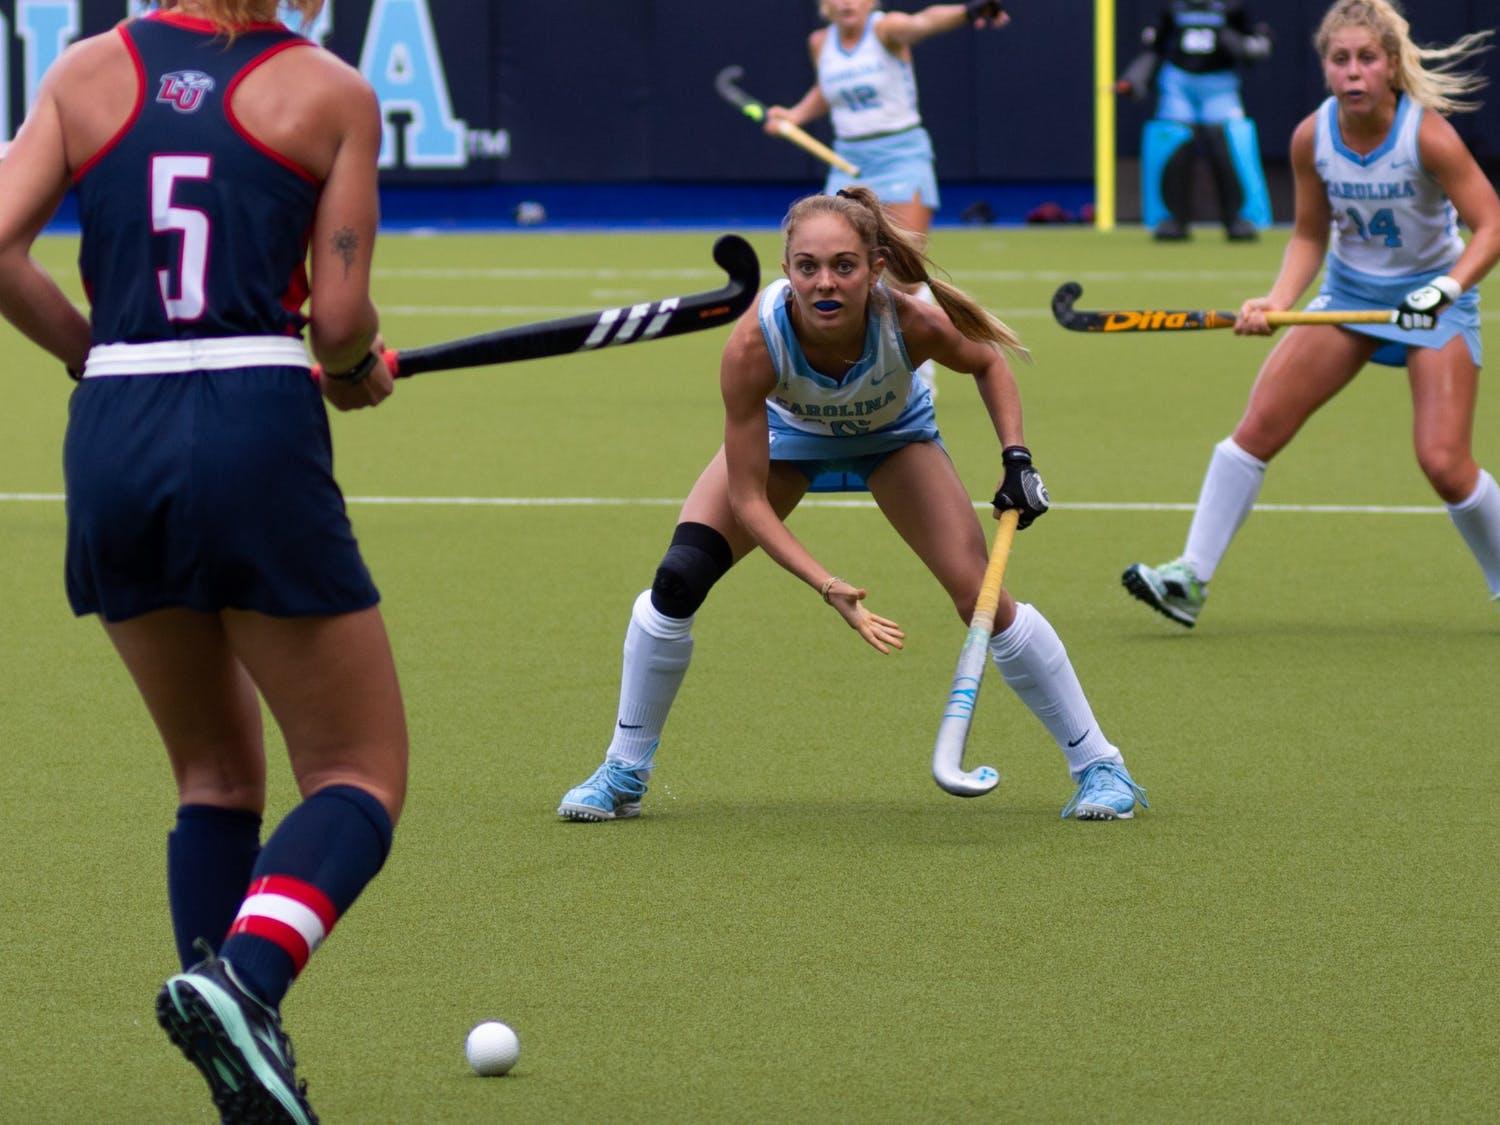 Senior midfielder Abby Pitcairn (16) waits to defend against a Liberty player during UNC's Oct. 10 field hockey game against Liberty. The game proved to be a loss for the Tar Heels–Liberty headed home with a 4-0 win.